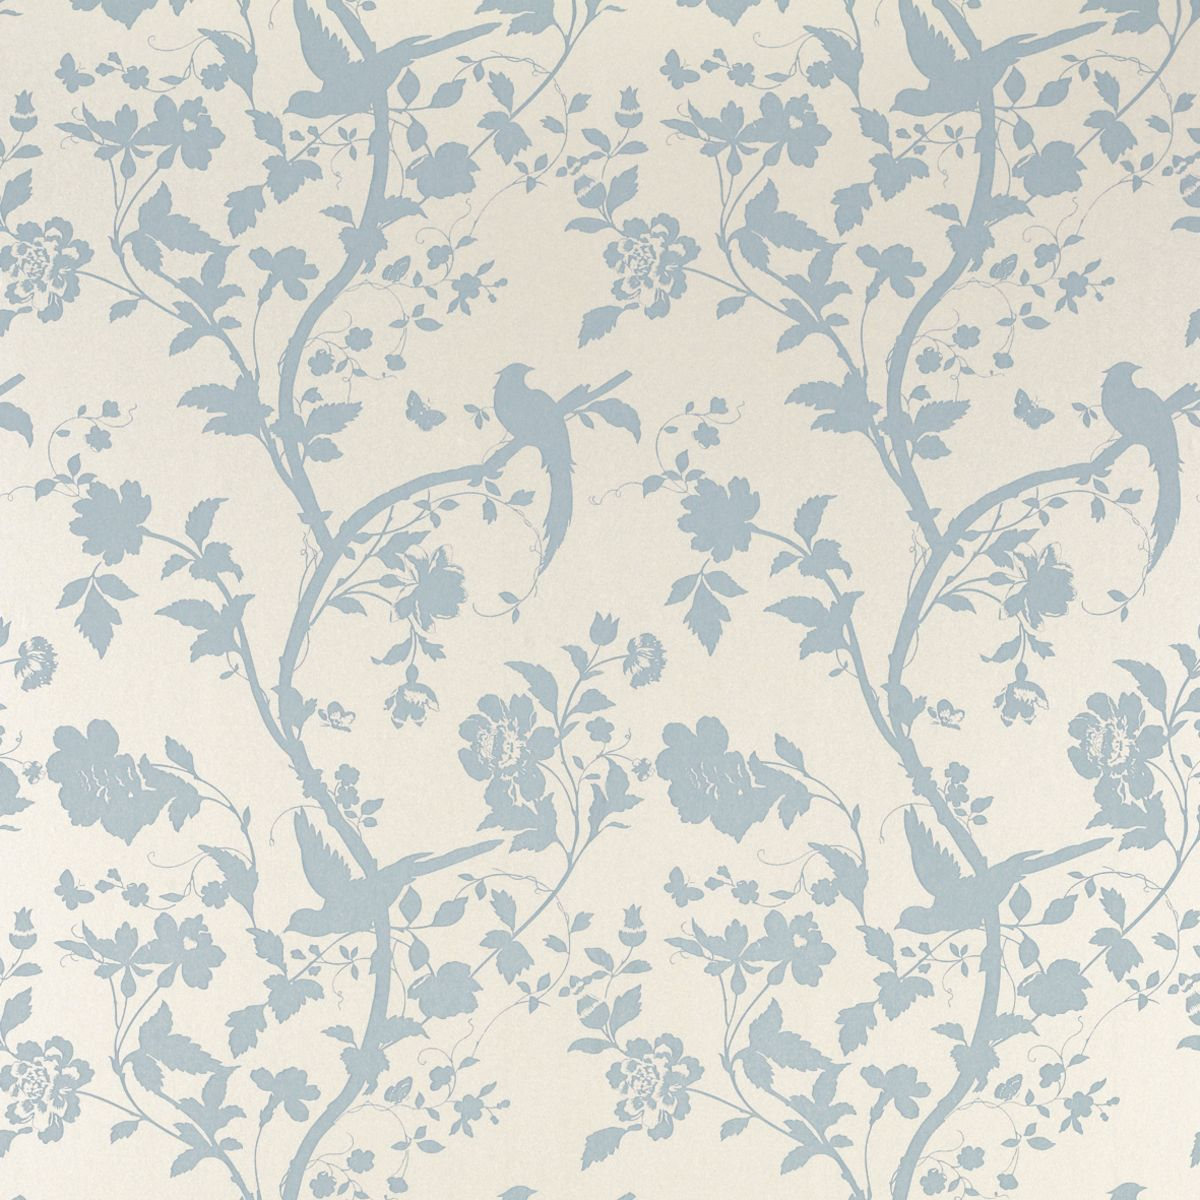 Image gallery laura ashley wallpaper discontinued for Discontinued wallpaper